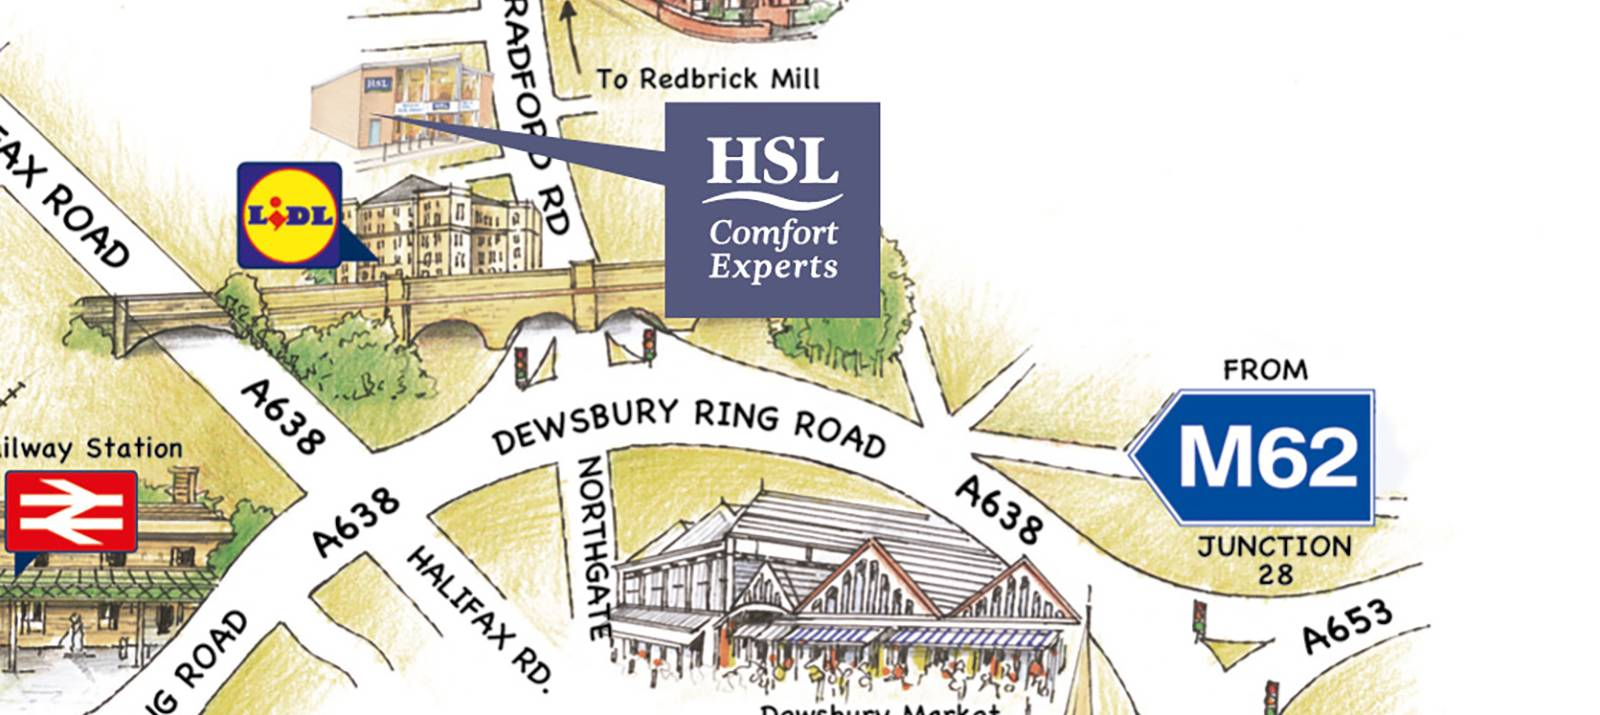 Dewsbury Store Map And Directions